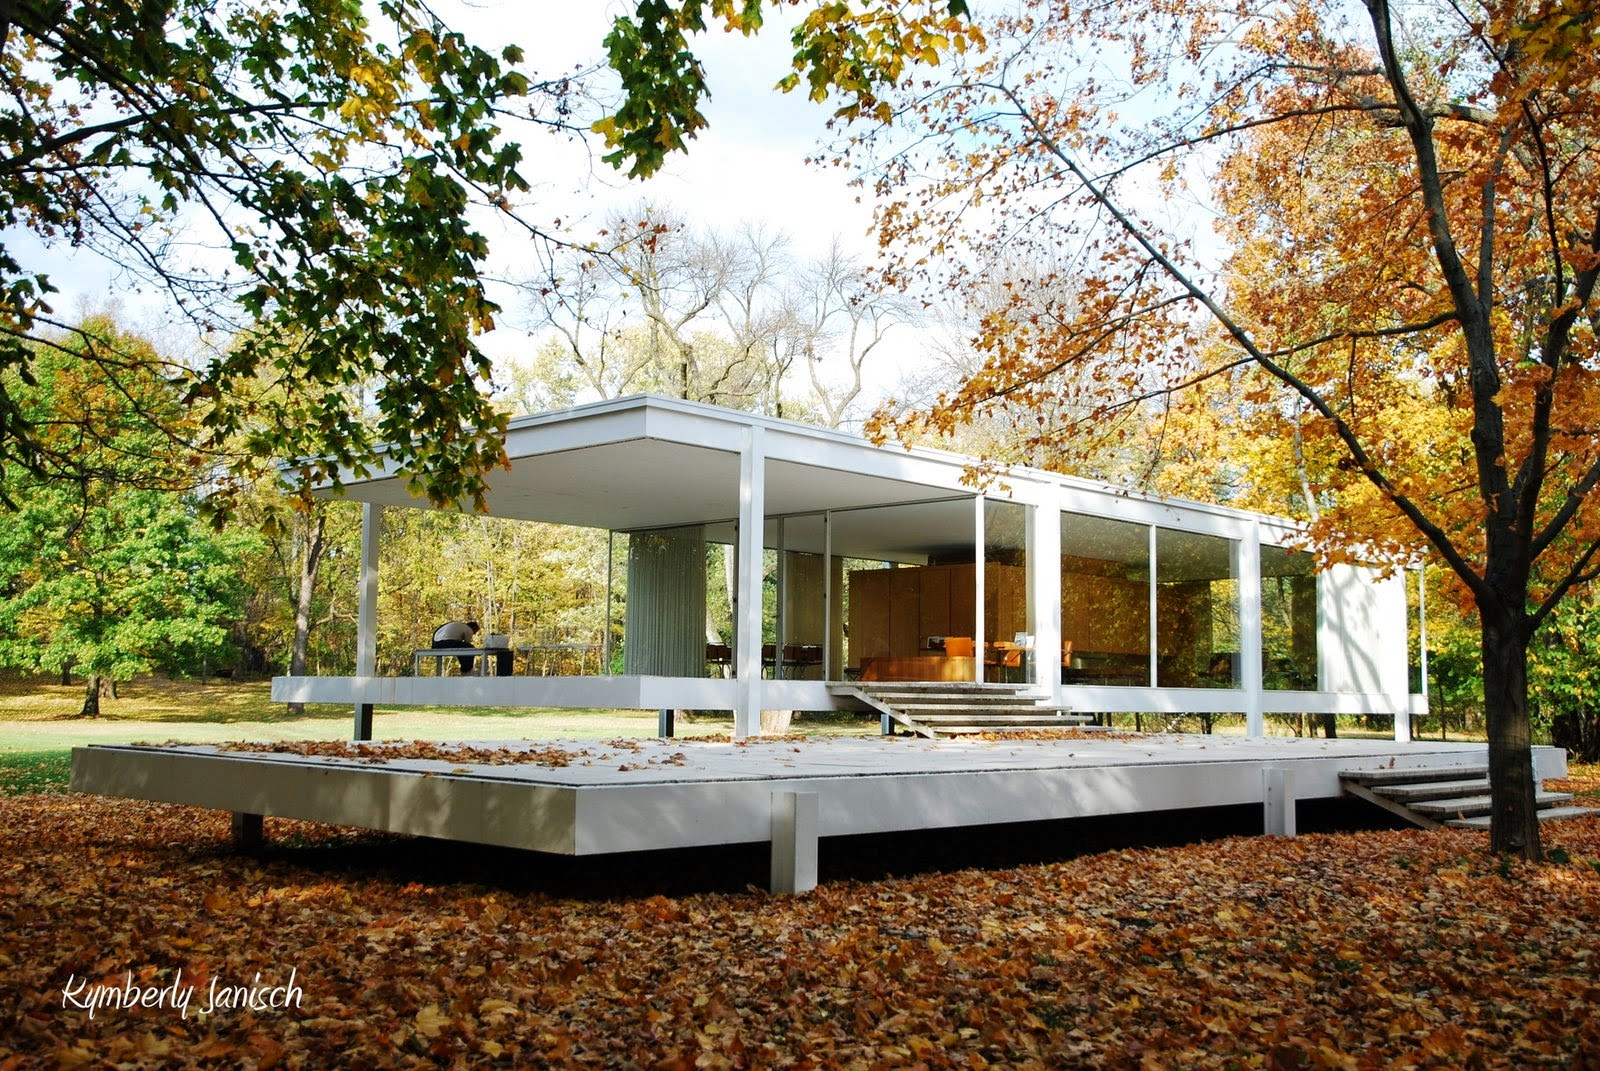 historia dise o interiores ied mies van der rohe farnsworth house. Black Bedroom Furniture Sets. Home Design Ideas